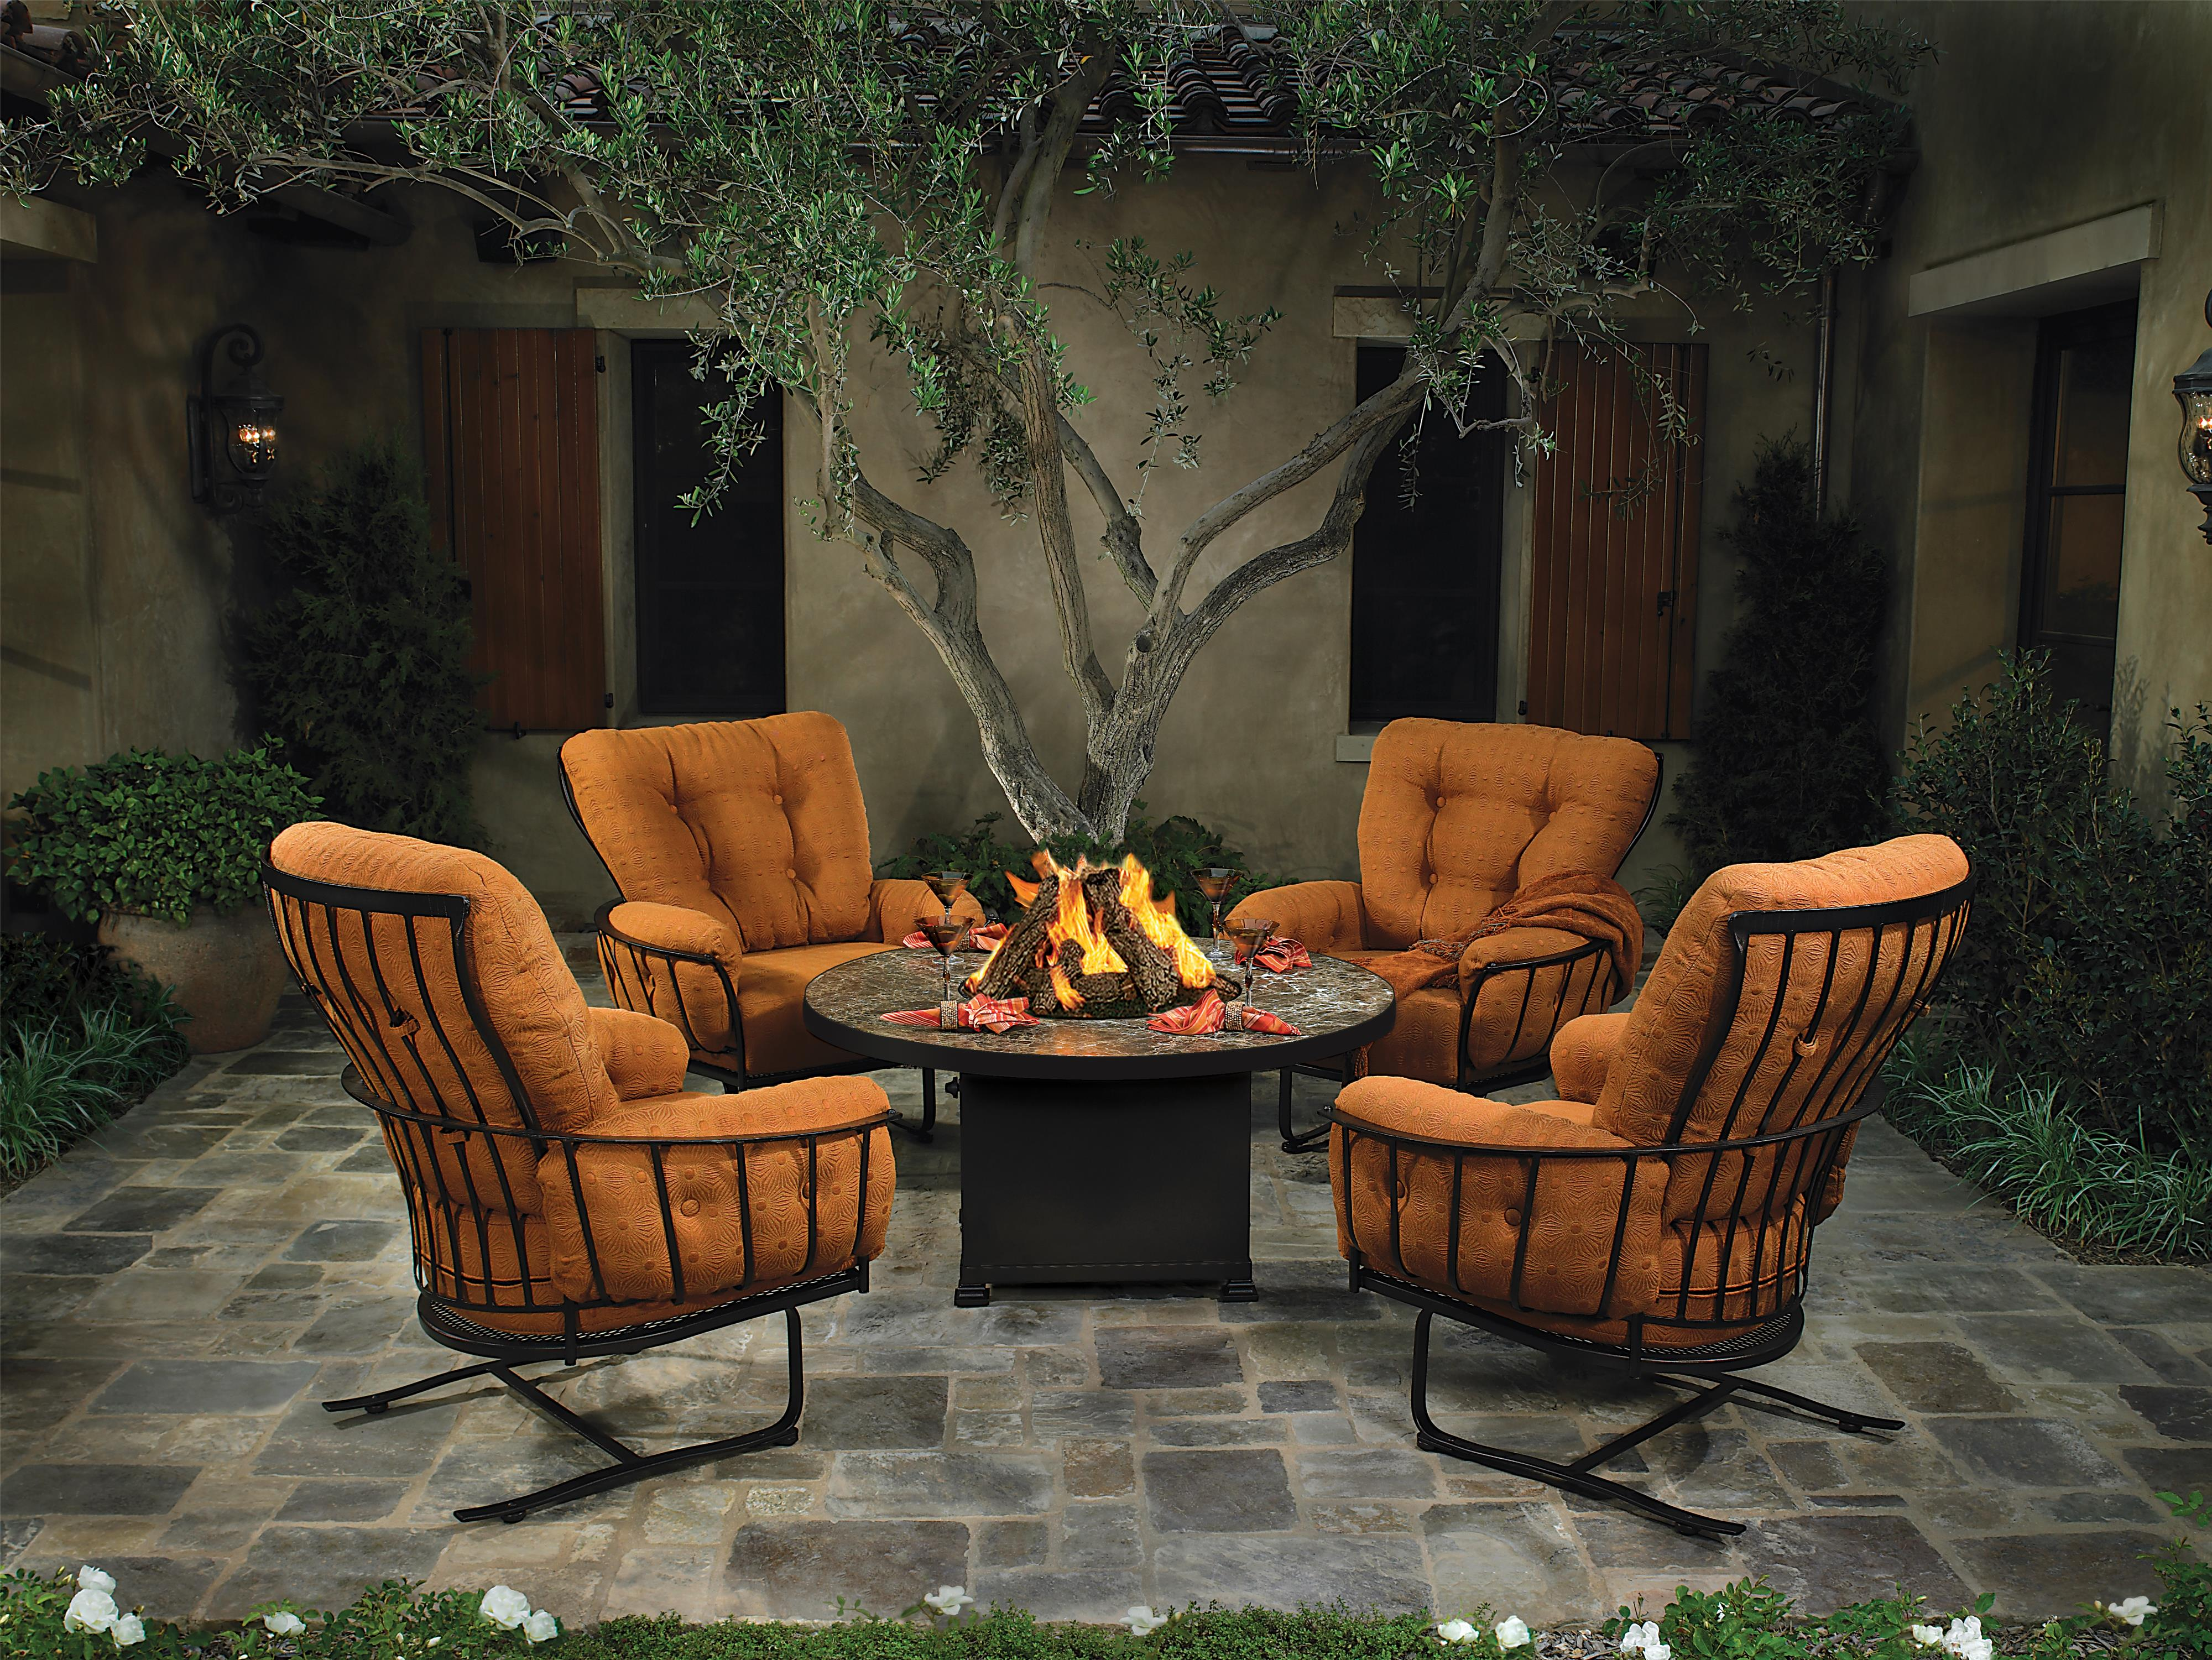 5 Pc Fire Pit and Chairs Outdoor Room Group